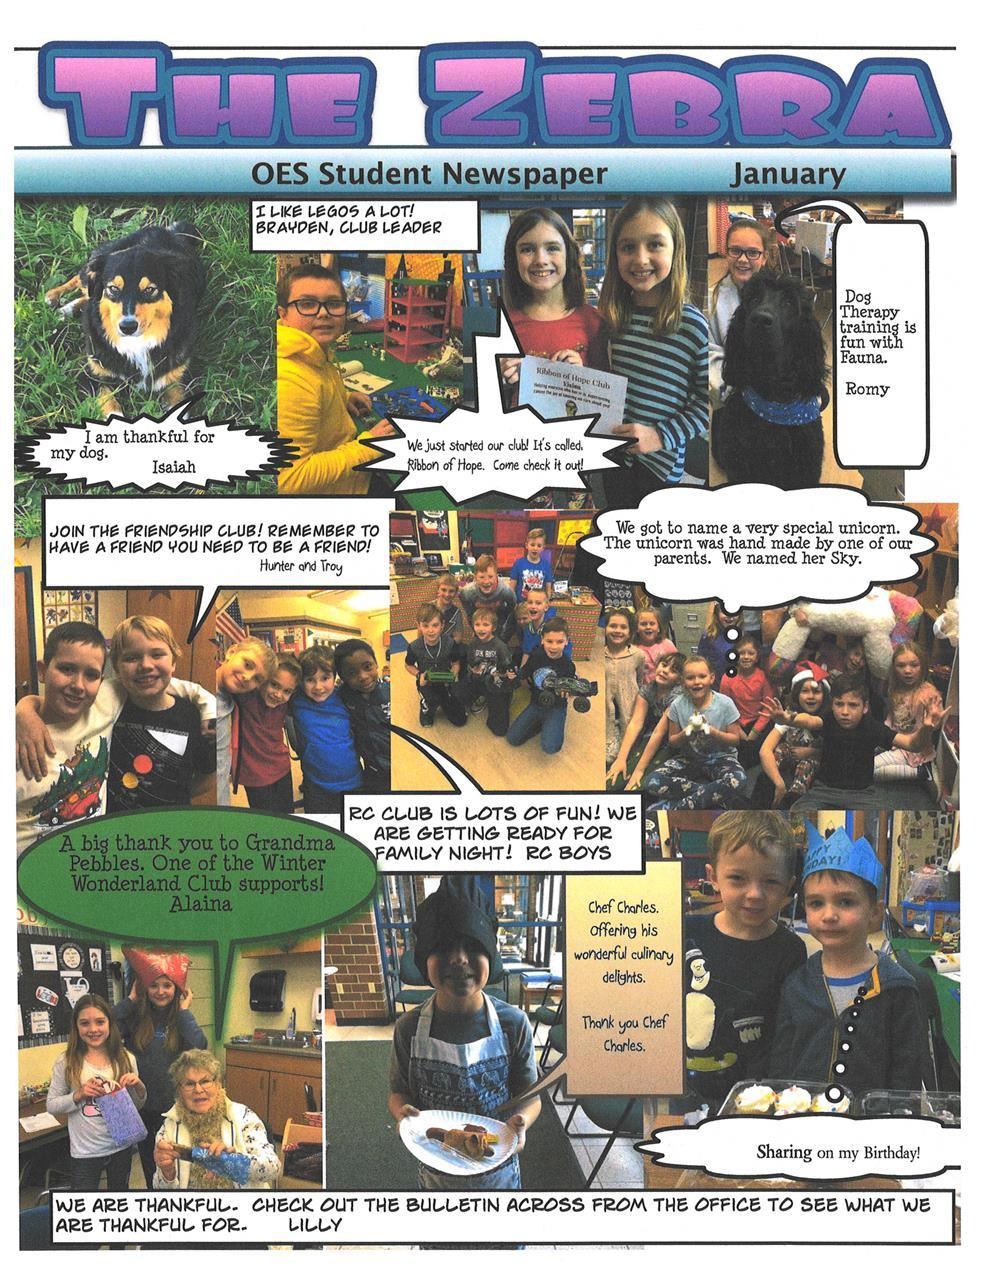 OES Student Newspaper